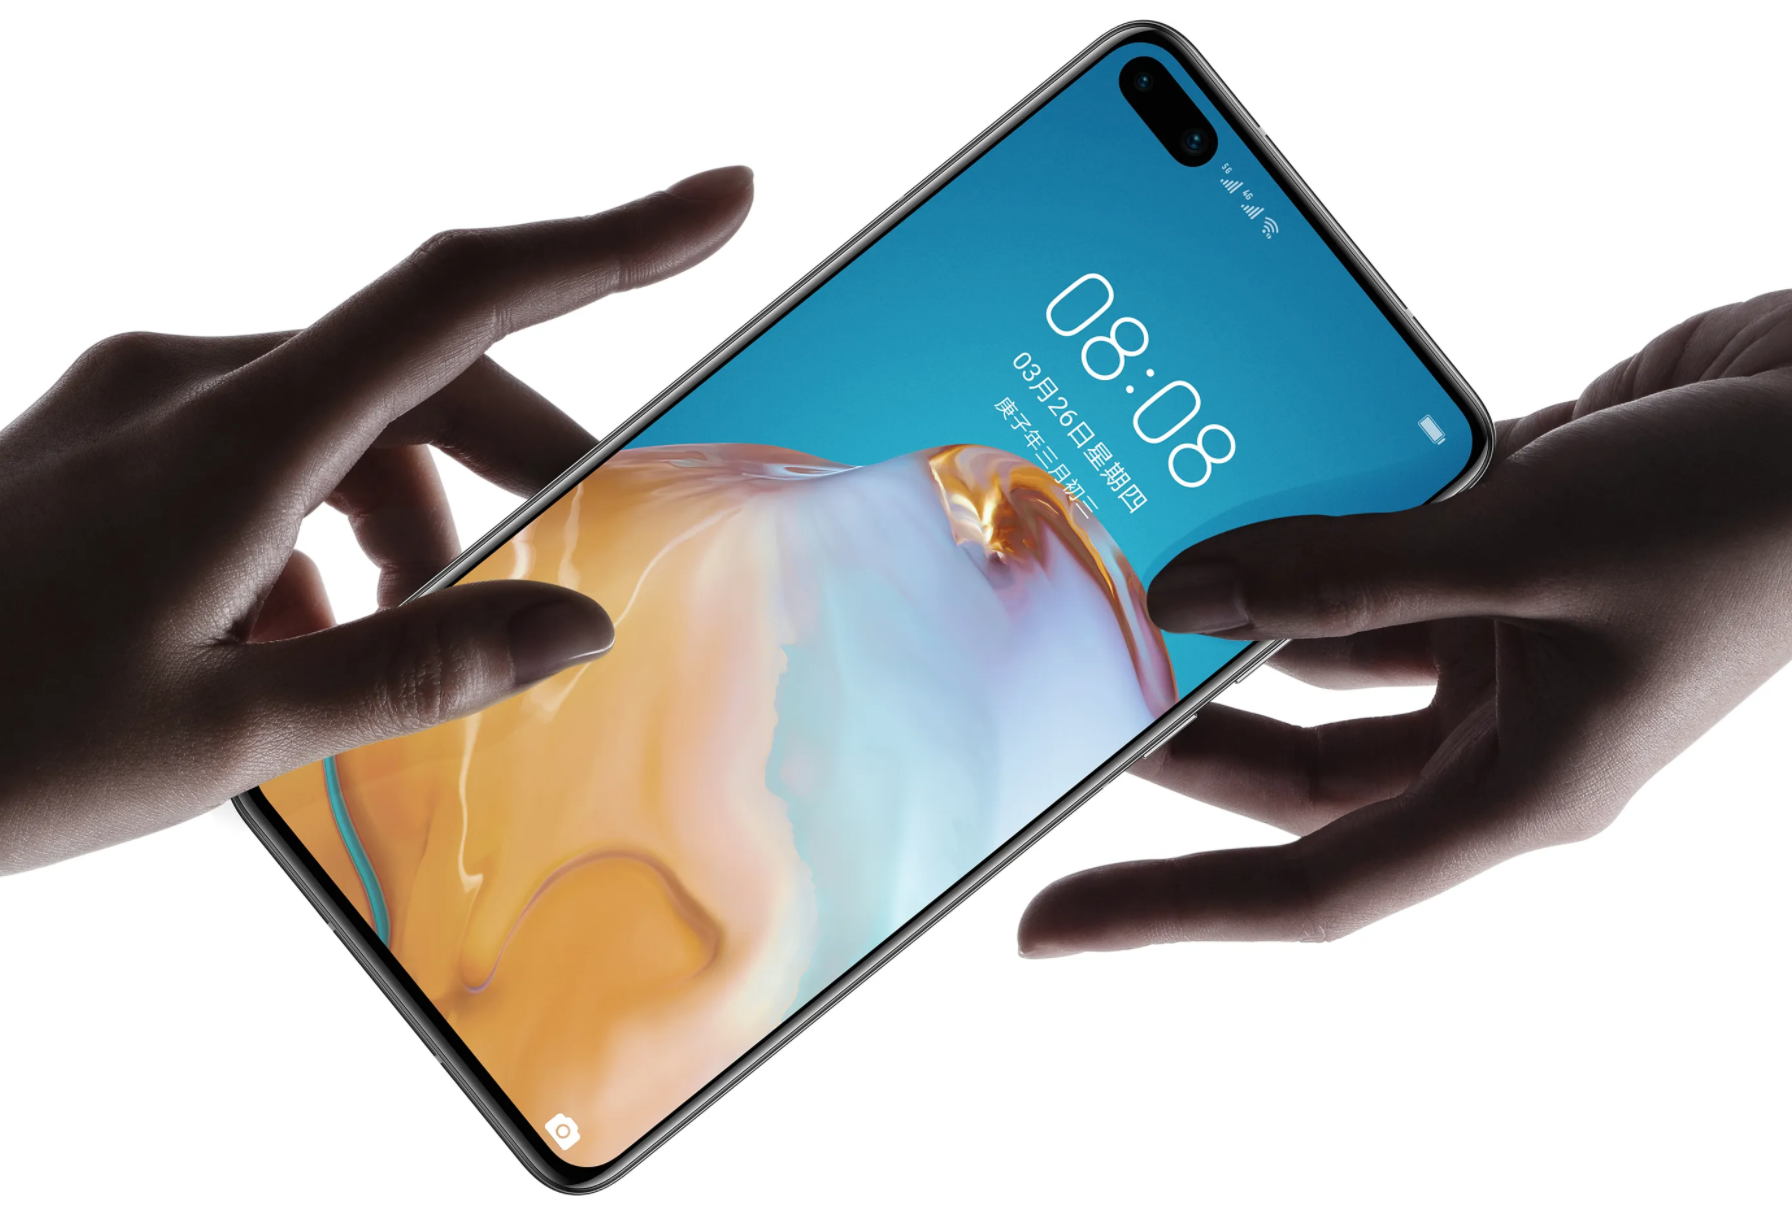 Huawei P40 and P40 Pro get EMUI 10.1.0.131 update, photo taking optimized-cnTechPost